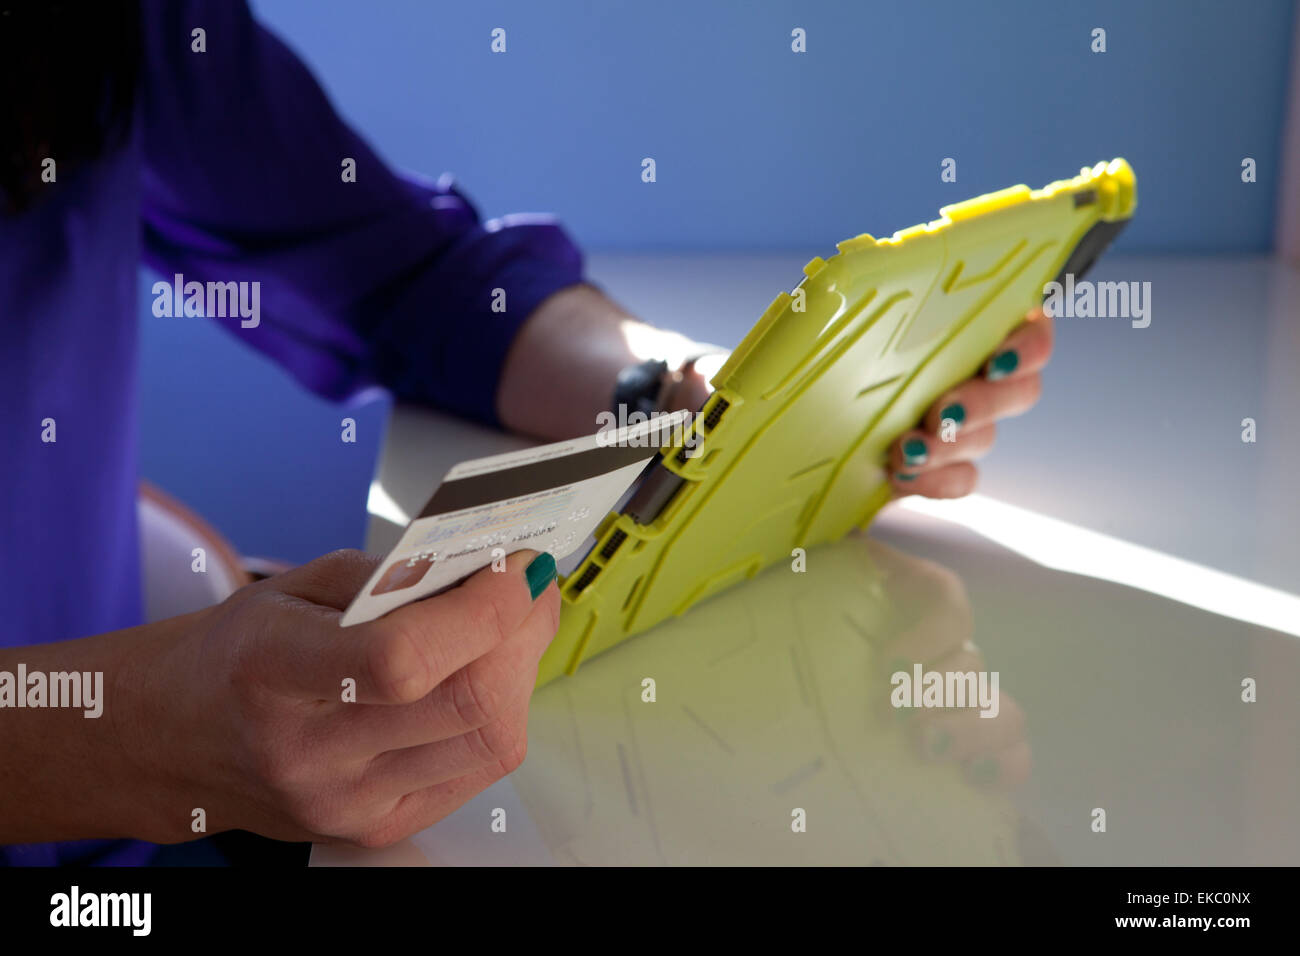 Cropped shot of woman making payment using credit card and digital tablet - Stock Image